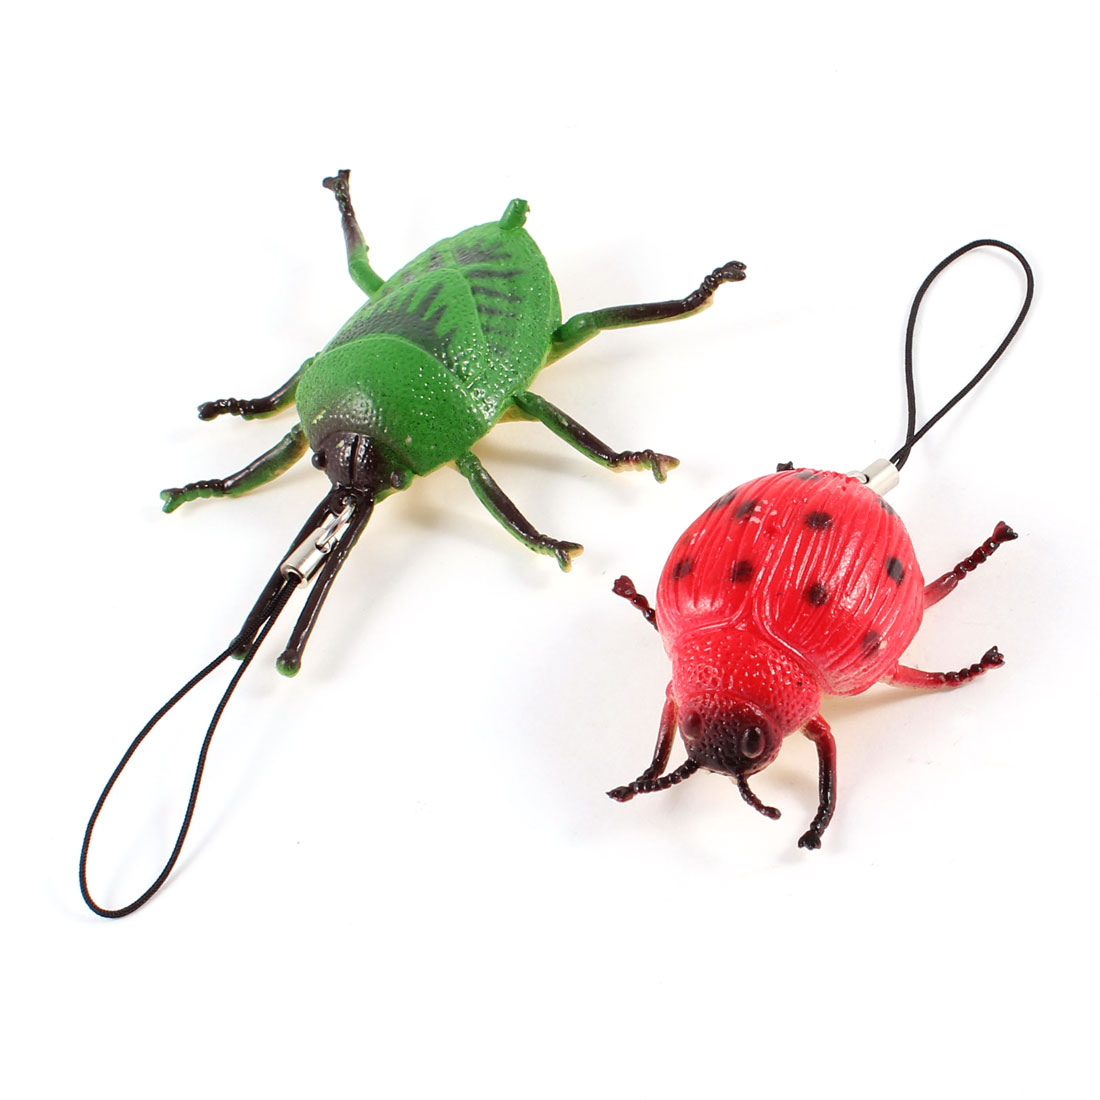 2 Pcs Red Green Plastic Insect Pendant Strap String Toy Gift for MP4 Cell Phone